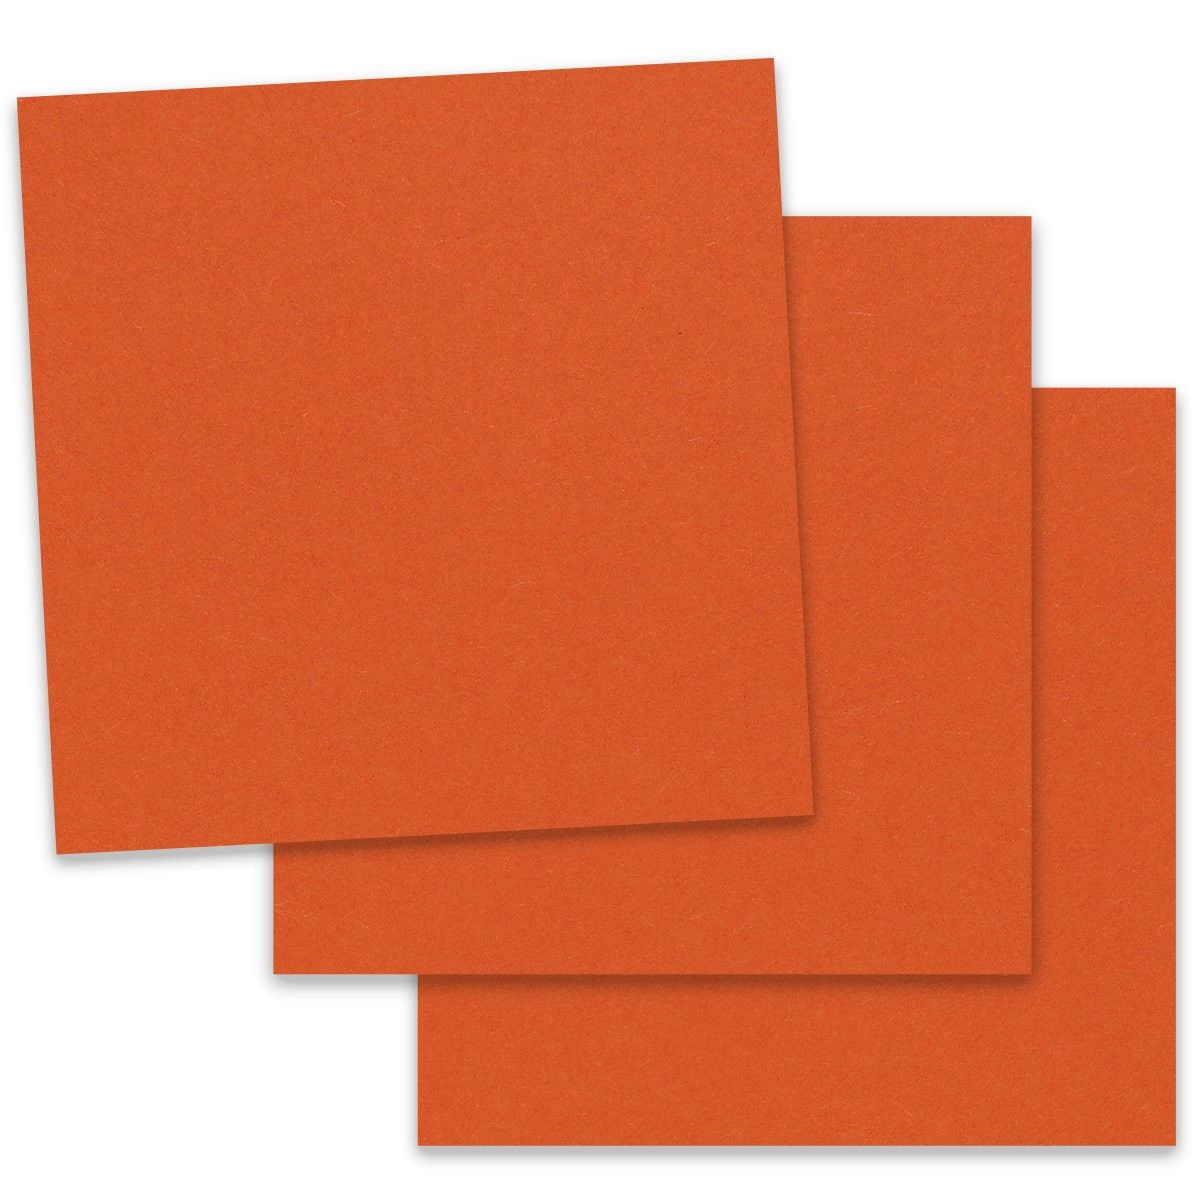 Extract Ember 12 X 12 Cardstock Paper 380 Gsm 140lb Cover 50 Pk In 2021 Paper Card Stock Cardstock Paper